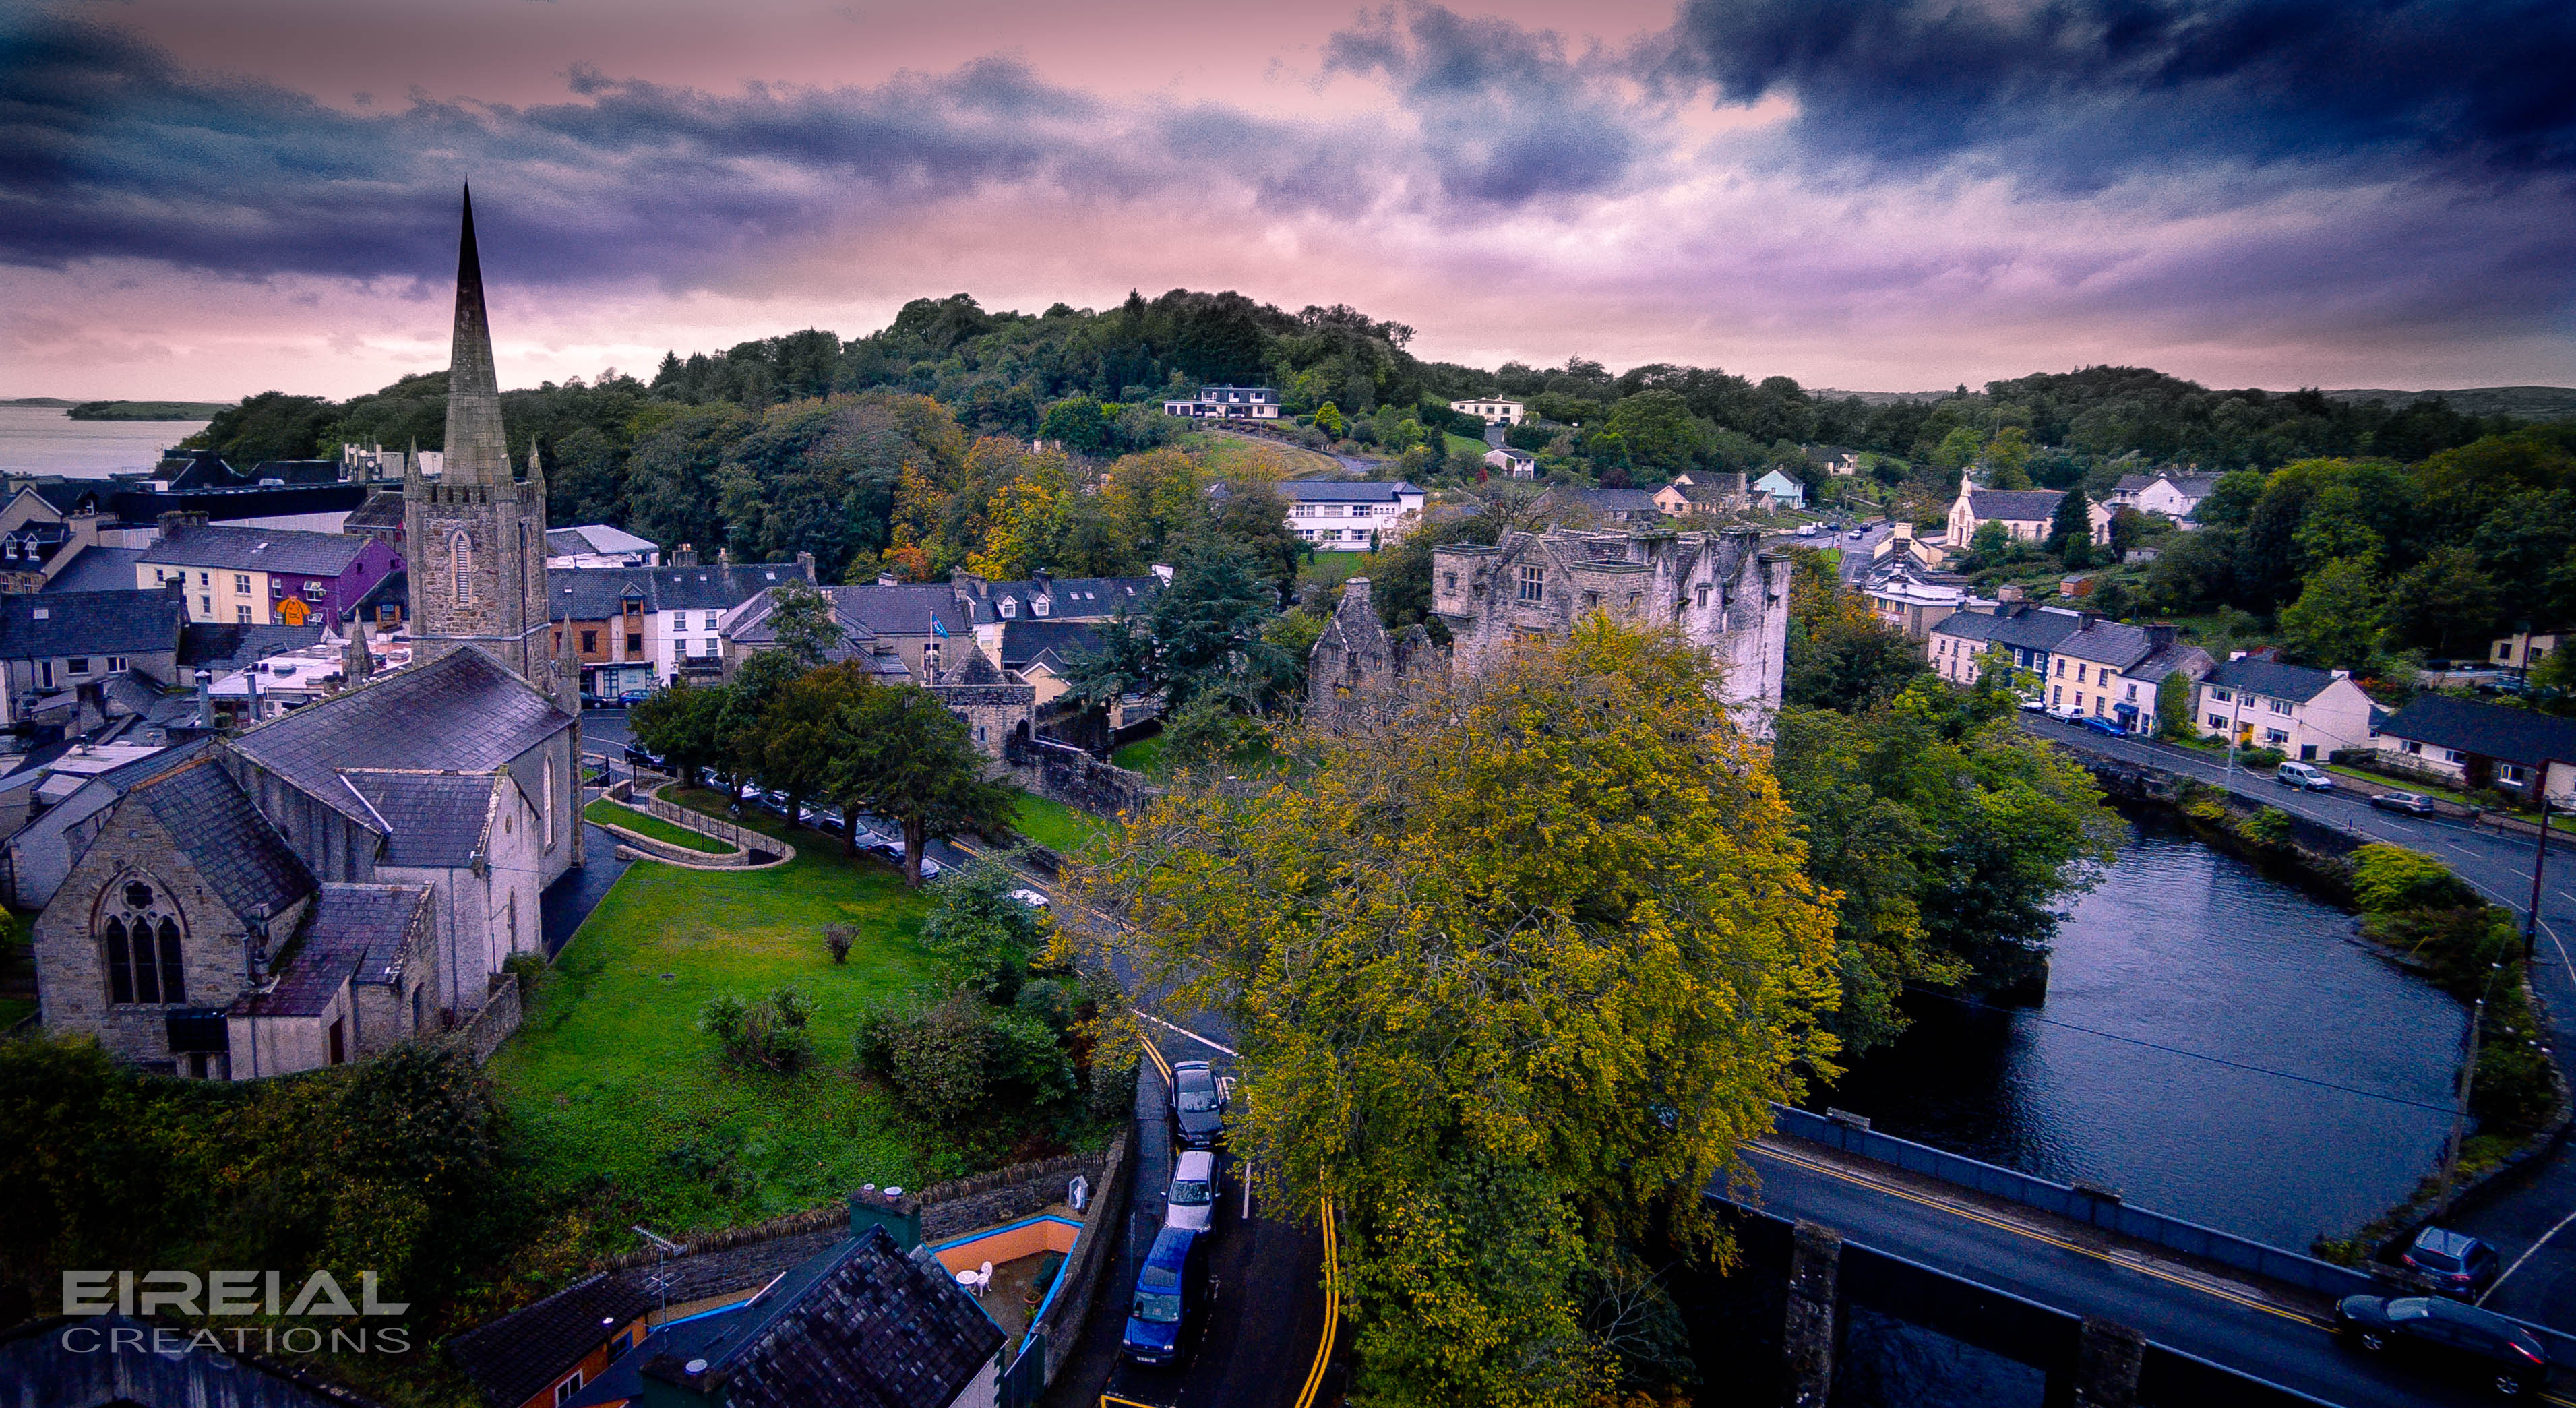 Donegal Ireland  city images : Donegal Castle, Donegal Town, County Donegal, Ireland.   Dronestagram